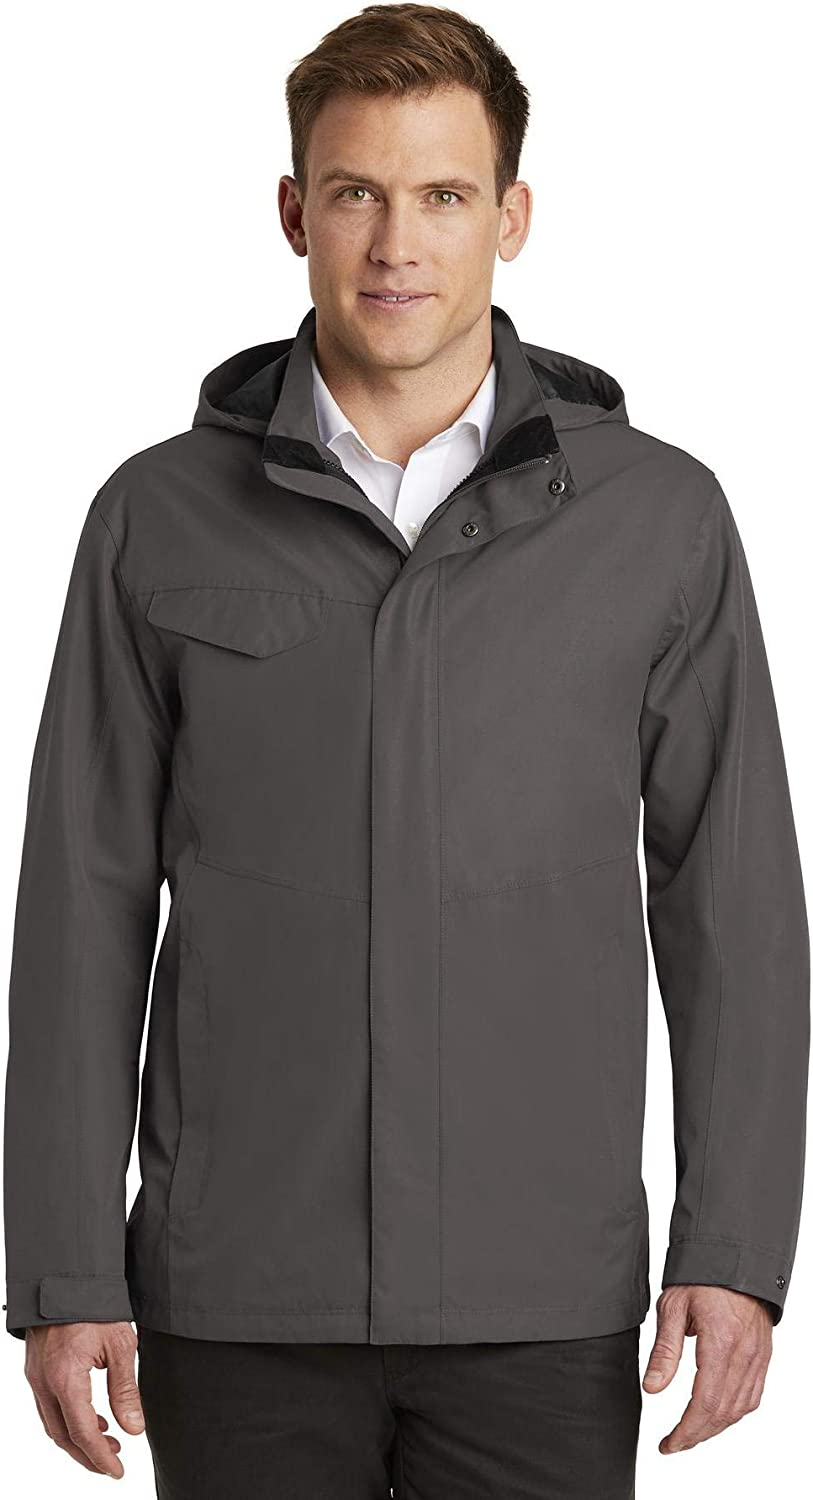 Port Authority Collective Outer Jacket Max 84% OFF L Nippon regular agency Graphite Shell